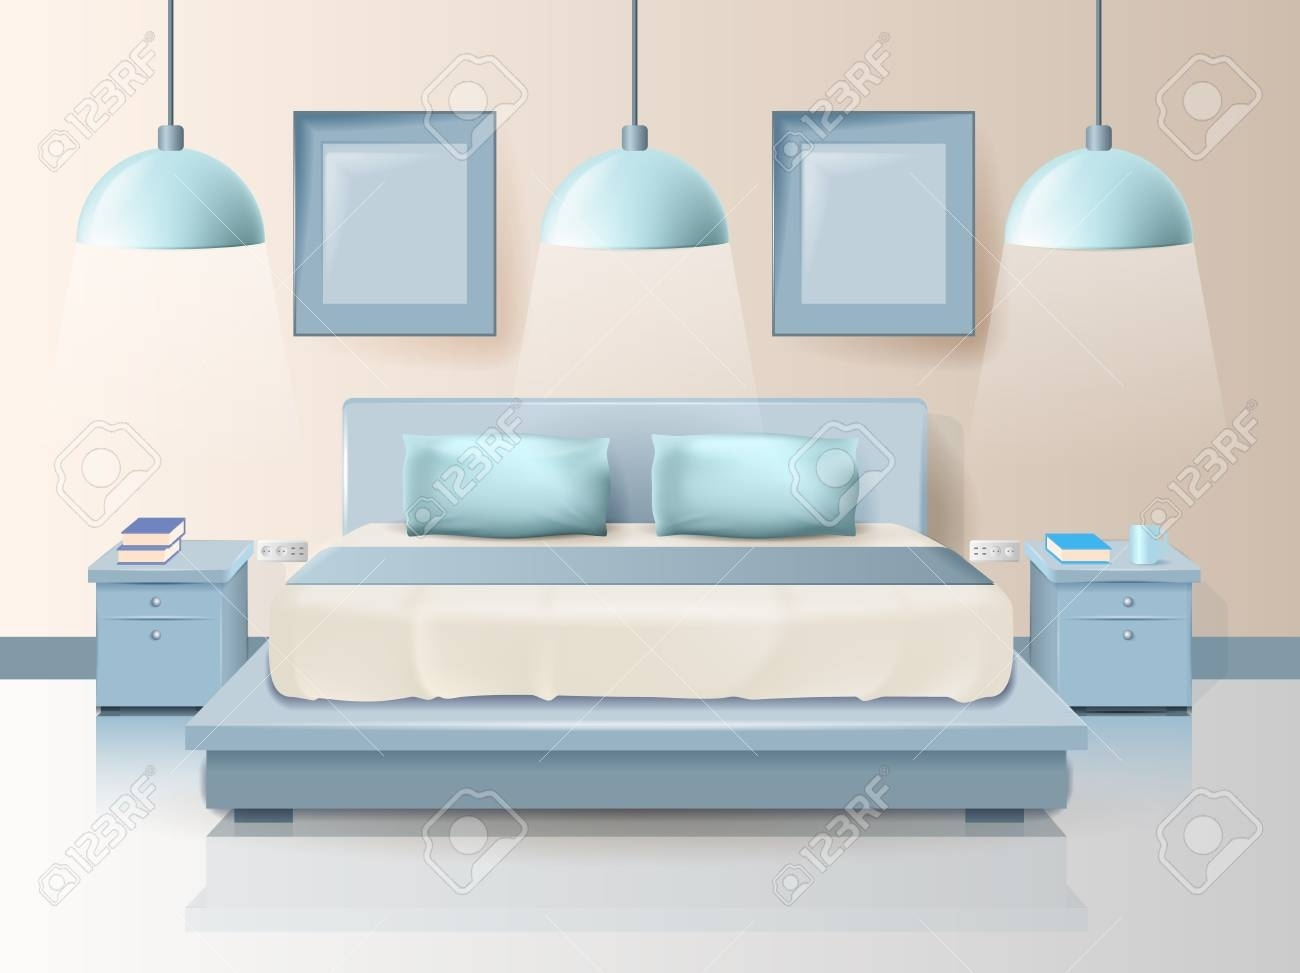 Modern Bedroom Design With Trendy Lighting Cartoon. Vector with How to Decorate Modern Bedroom with Lighting Design Ideas - modern bedroom with lighting